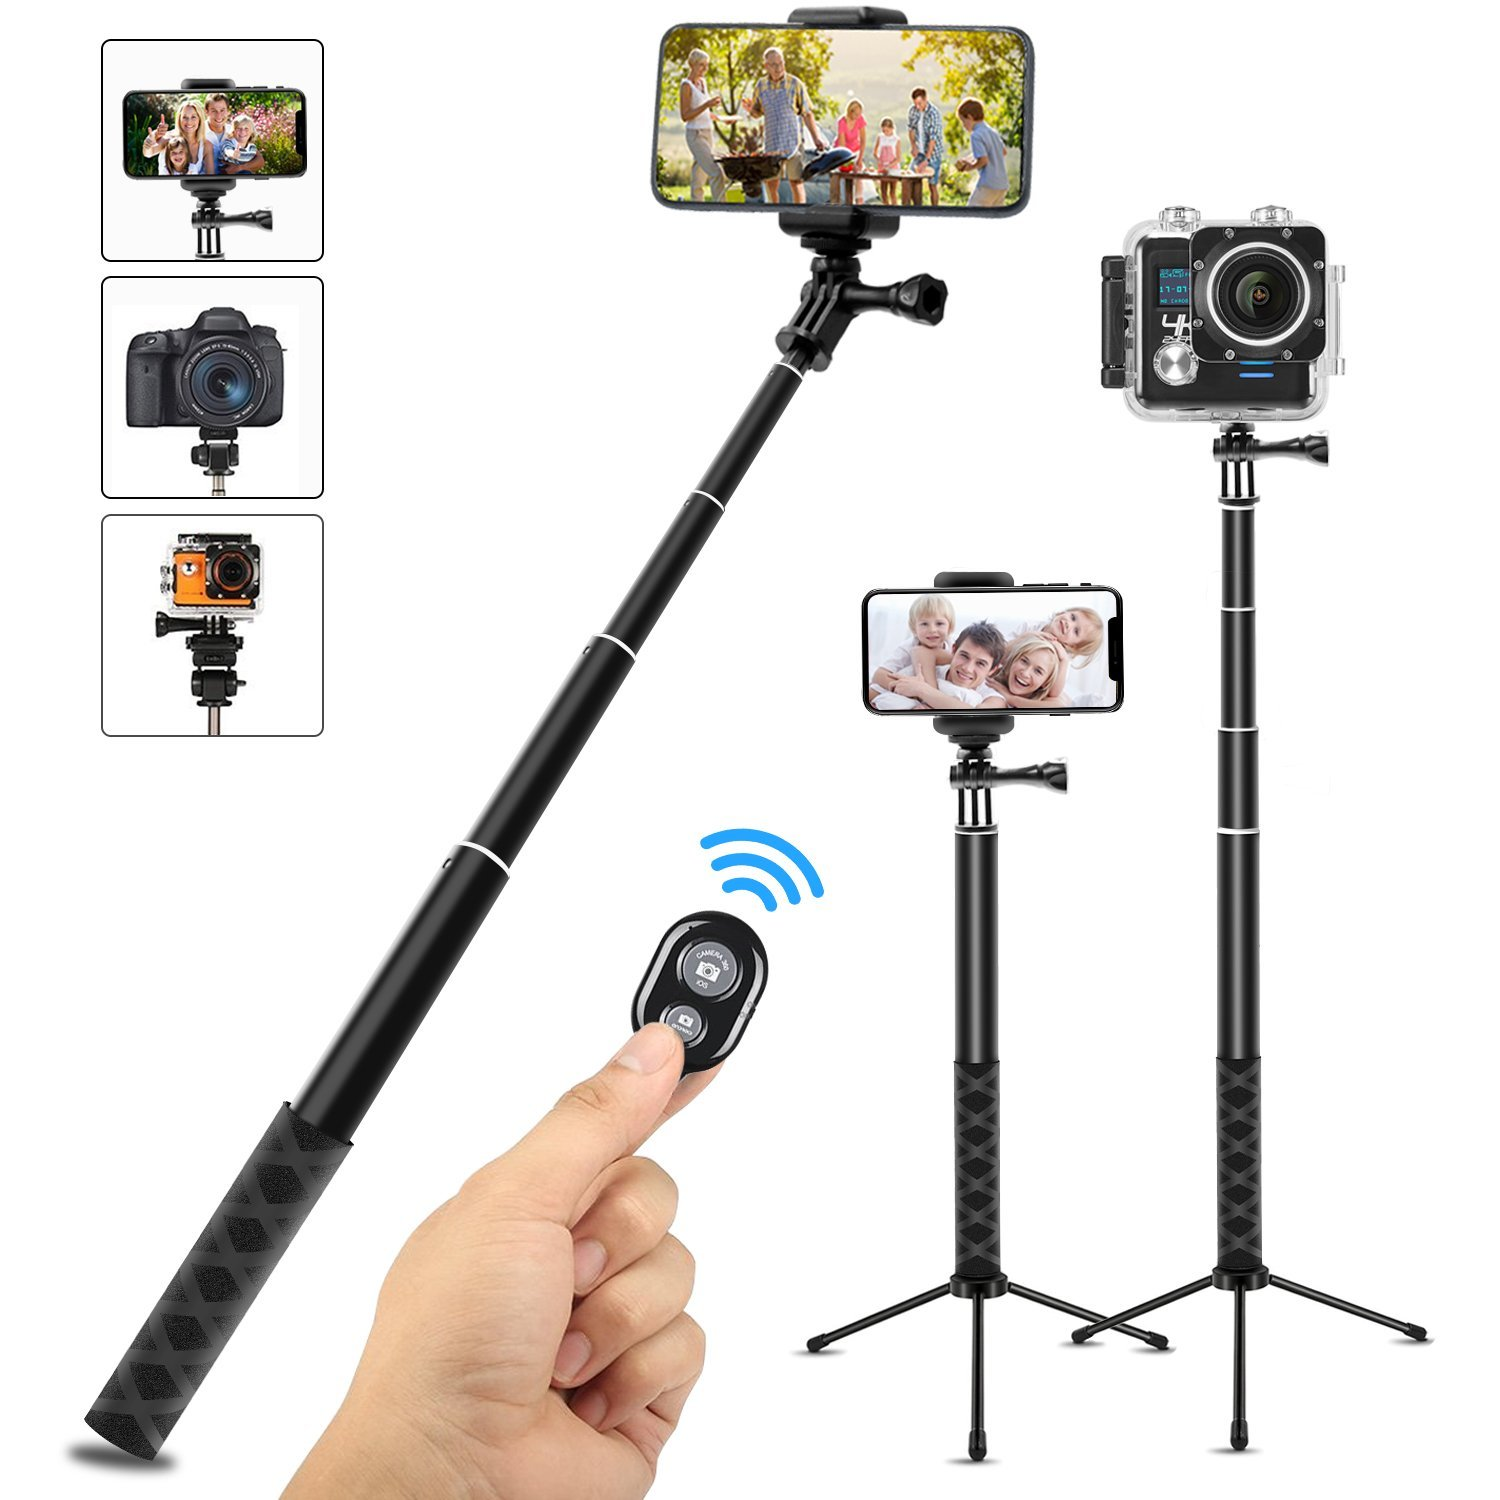 Wsky Selfie Stick Bluetooth, Extendable Selfie Stick Tripod with Wireless Remote for Action Camera, iPhone SE/iPhone 7/iPhone 7 Plus/iPhone 8/8 Plus, and More Android Smart Phone